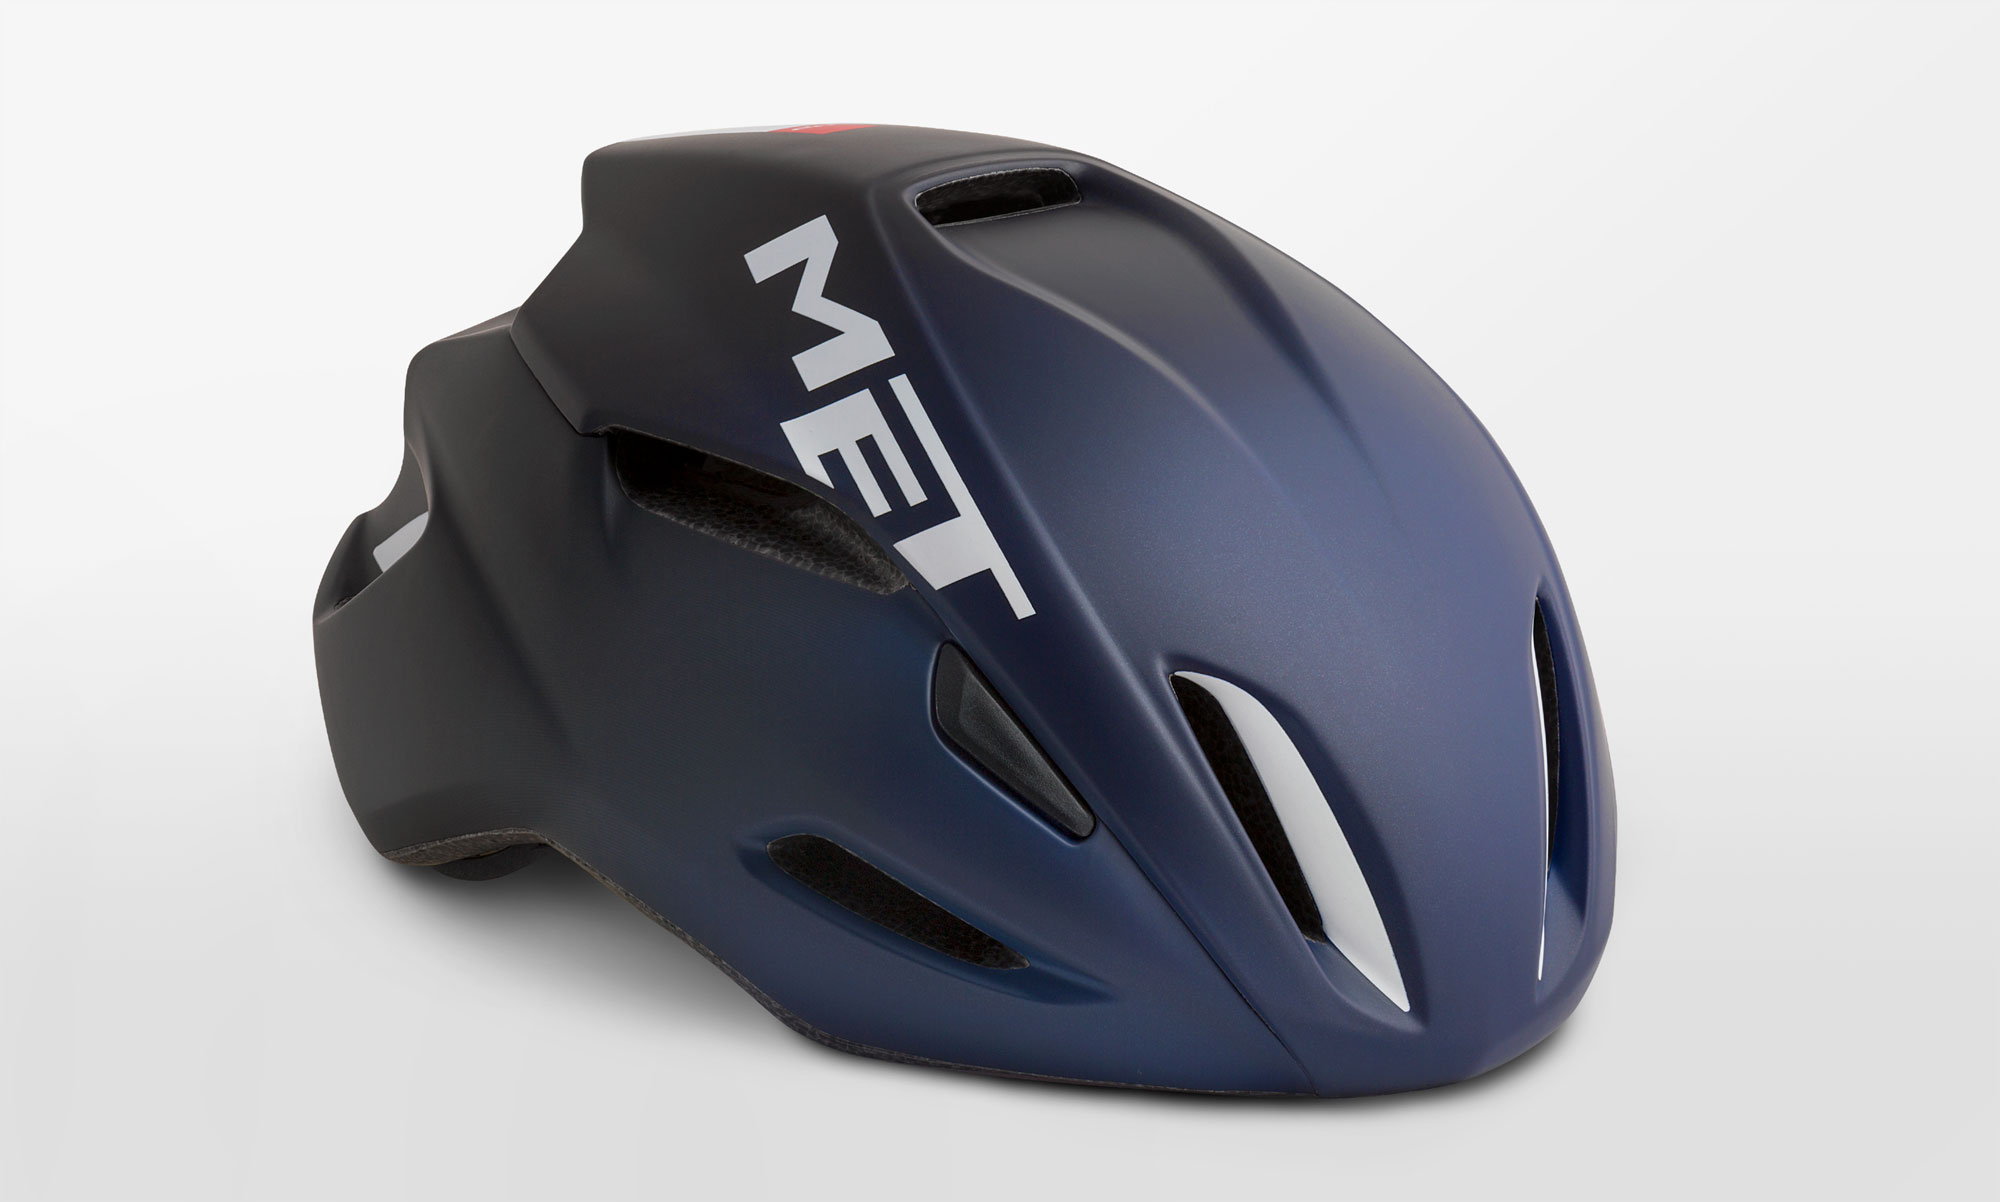 Manta - We developed the MET Manta specifically with aerodynamic performance in mind. It's quite simply one of the most competitive sprinters' helmets in the game, saving you 10 watts at 50km/h.